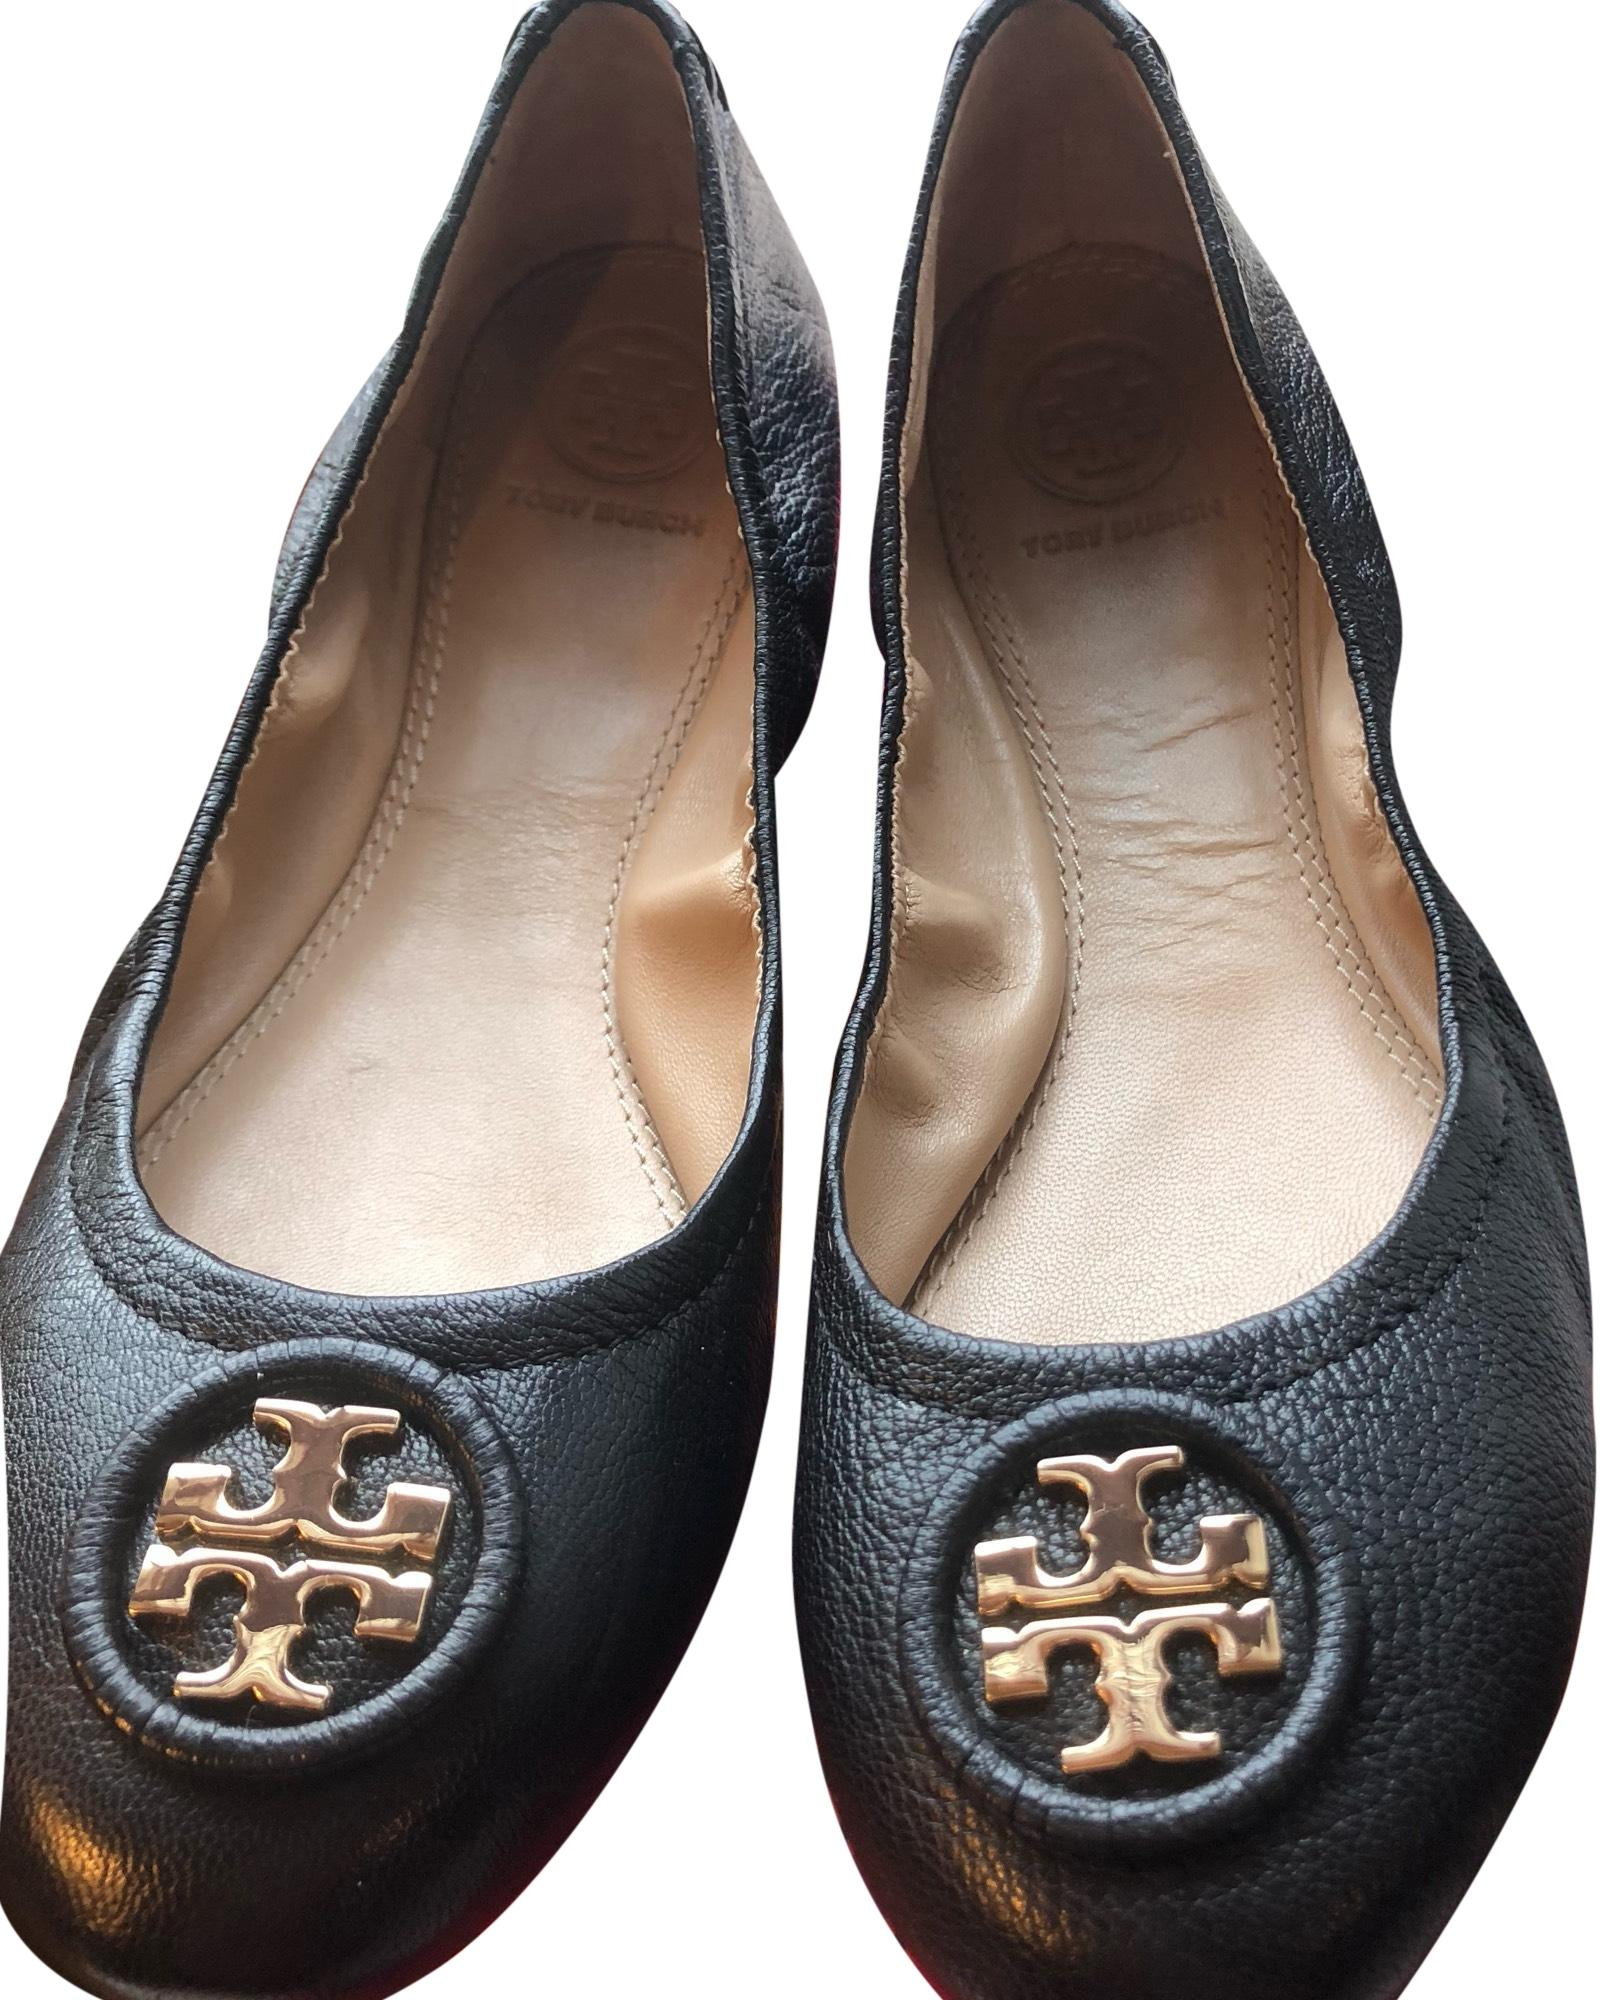 9969c60c0acc45 ... size 8 1d04f b81d2  low price tory burch black flats 9c11c 18c33